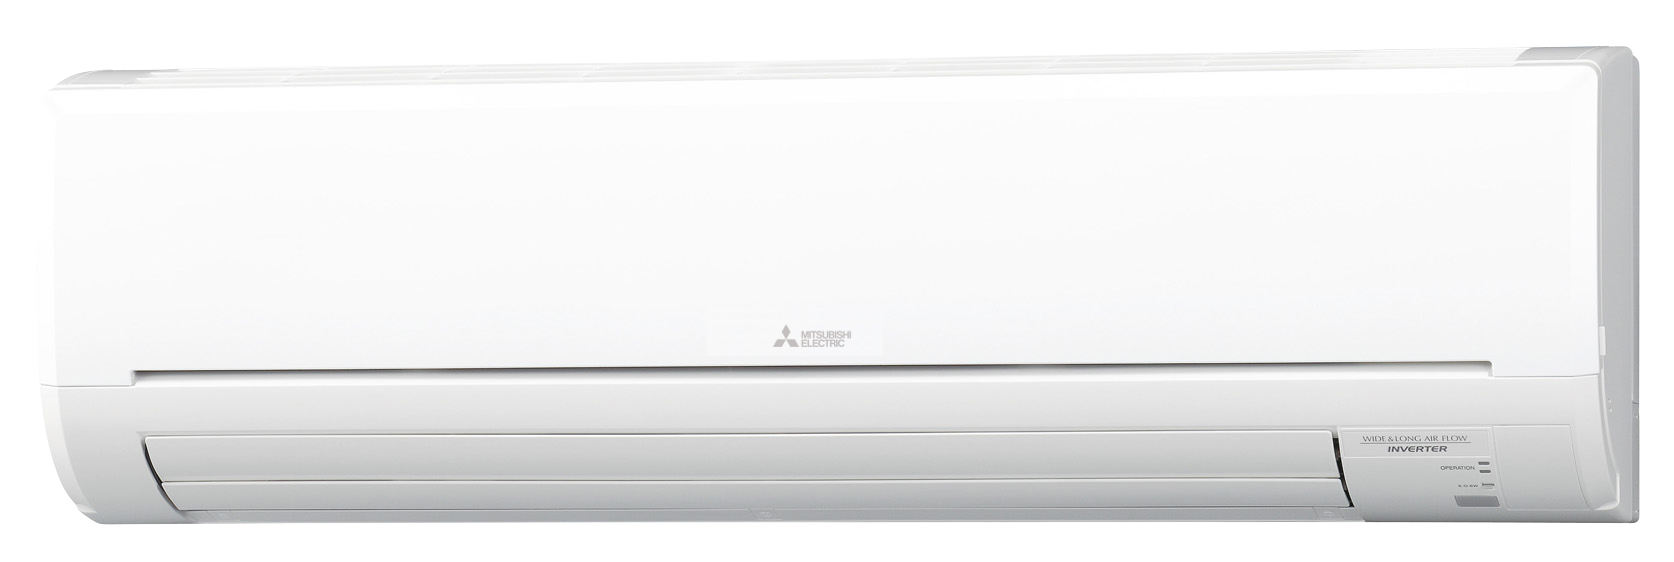 Ductless Unit Series: GL24